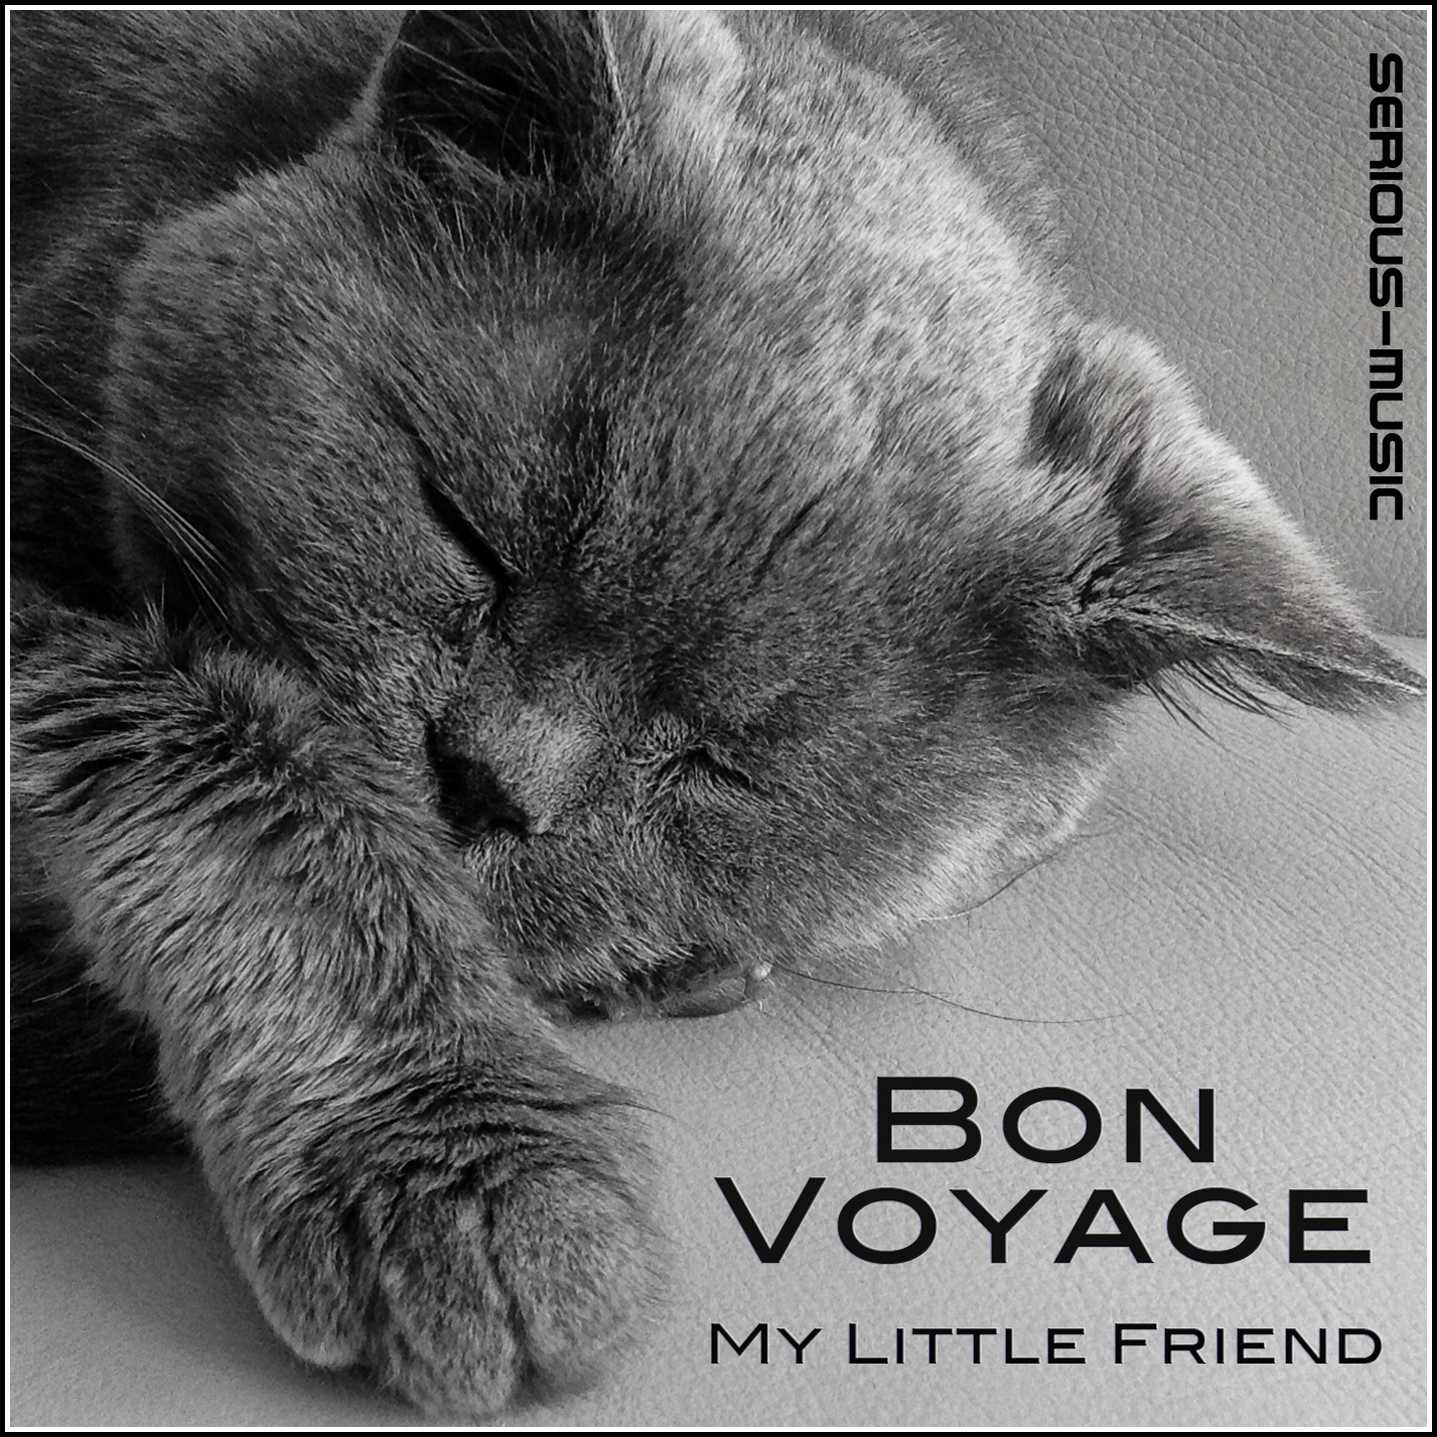 Bon Voyage My Little Friend - Album INTROSPECTIVE